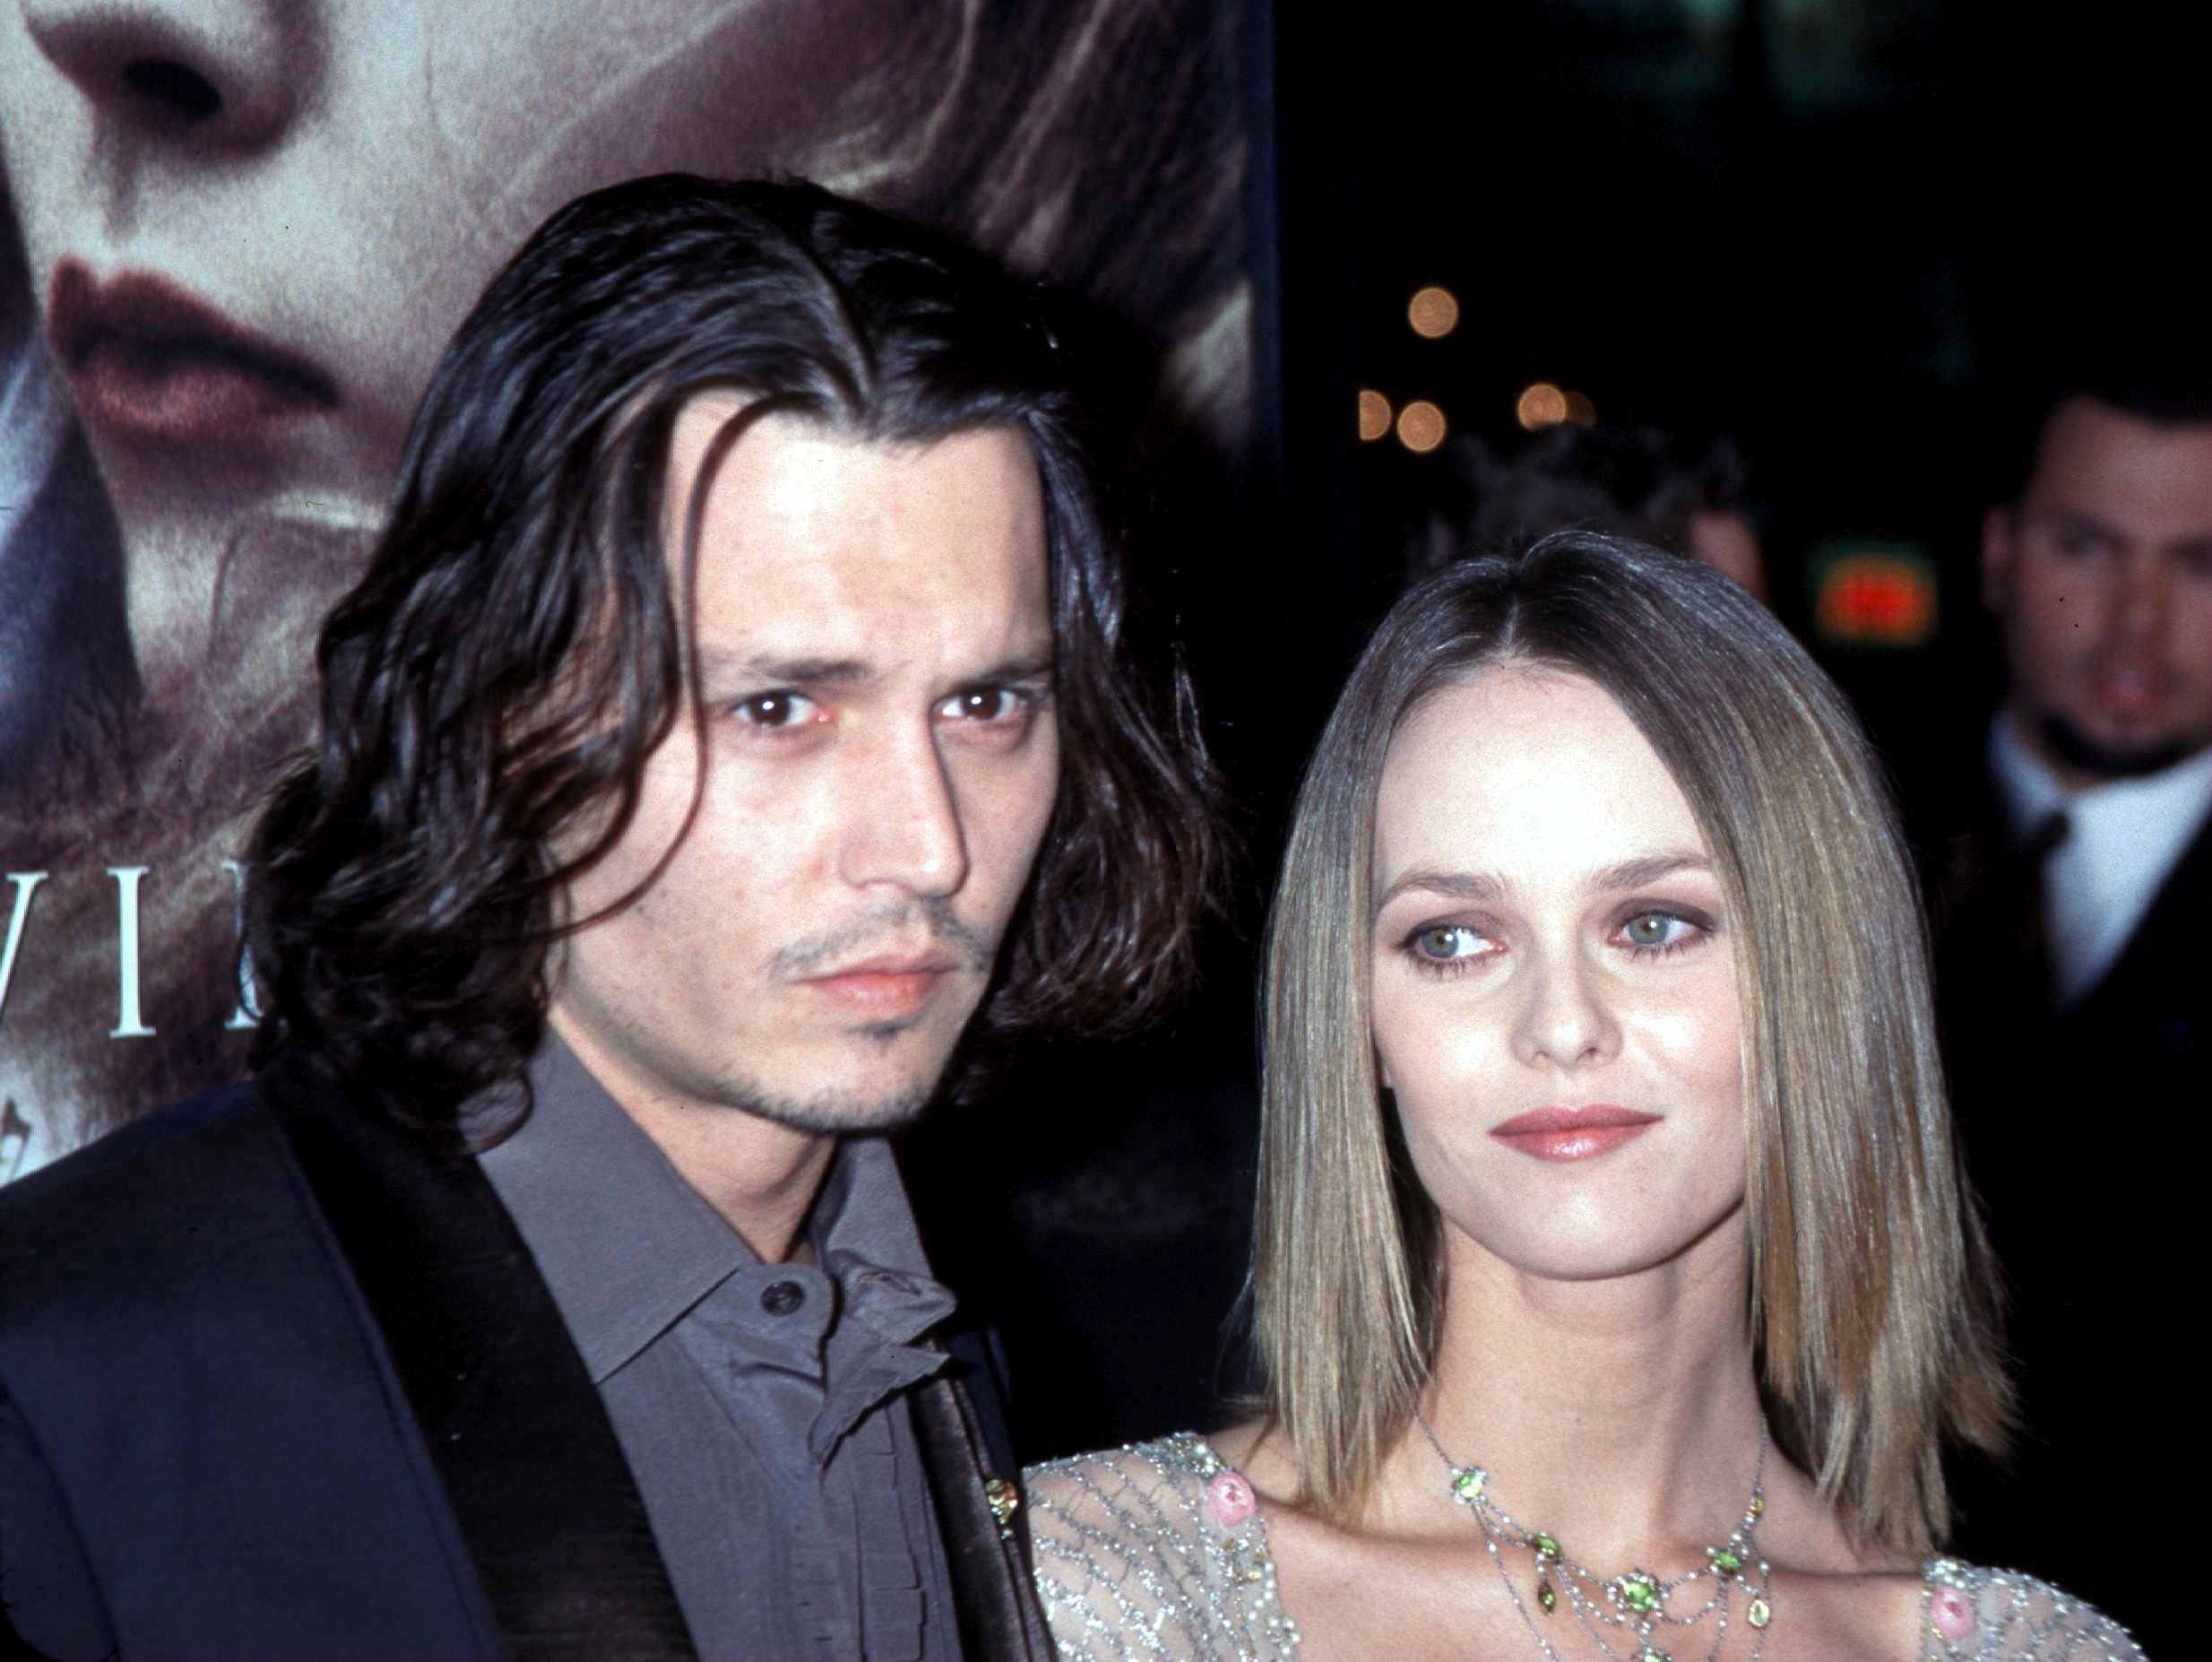 Johnny Depp e Vanessa Paradis em foto de 1999 (Foto: Getty Images)